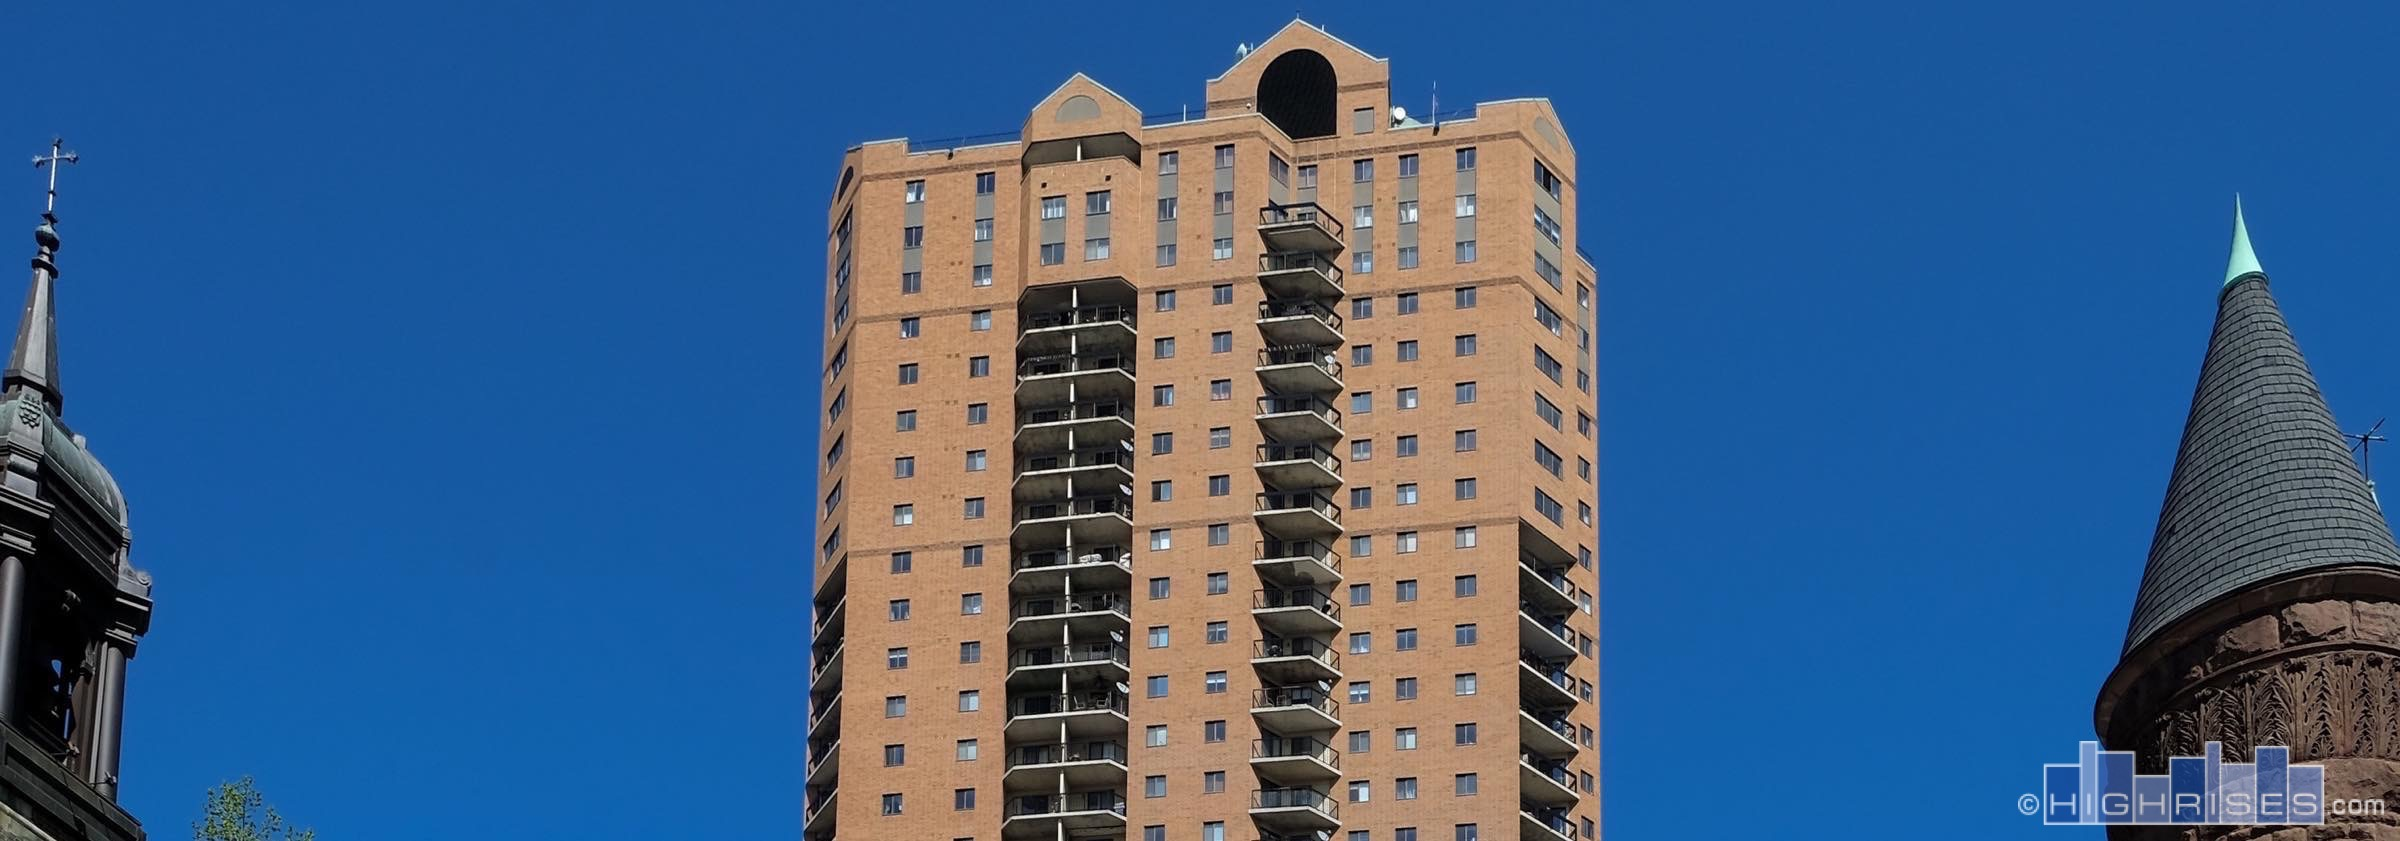 The Pointe Of St Paul Condos 78 E 10th St